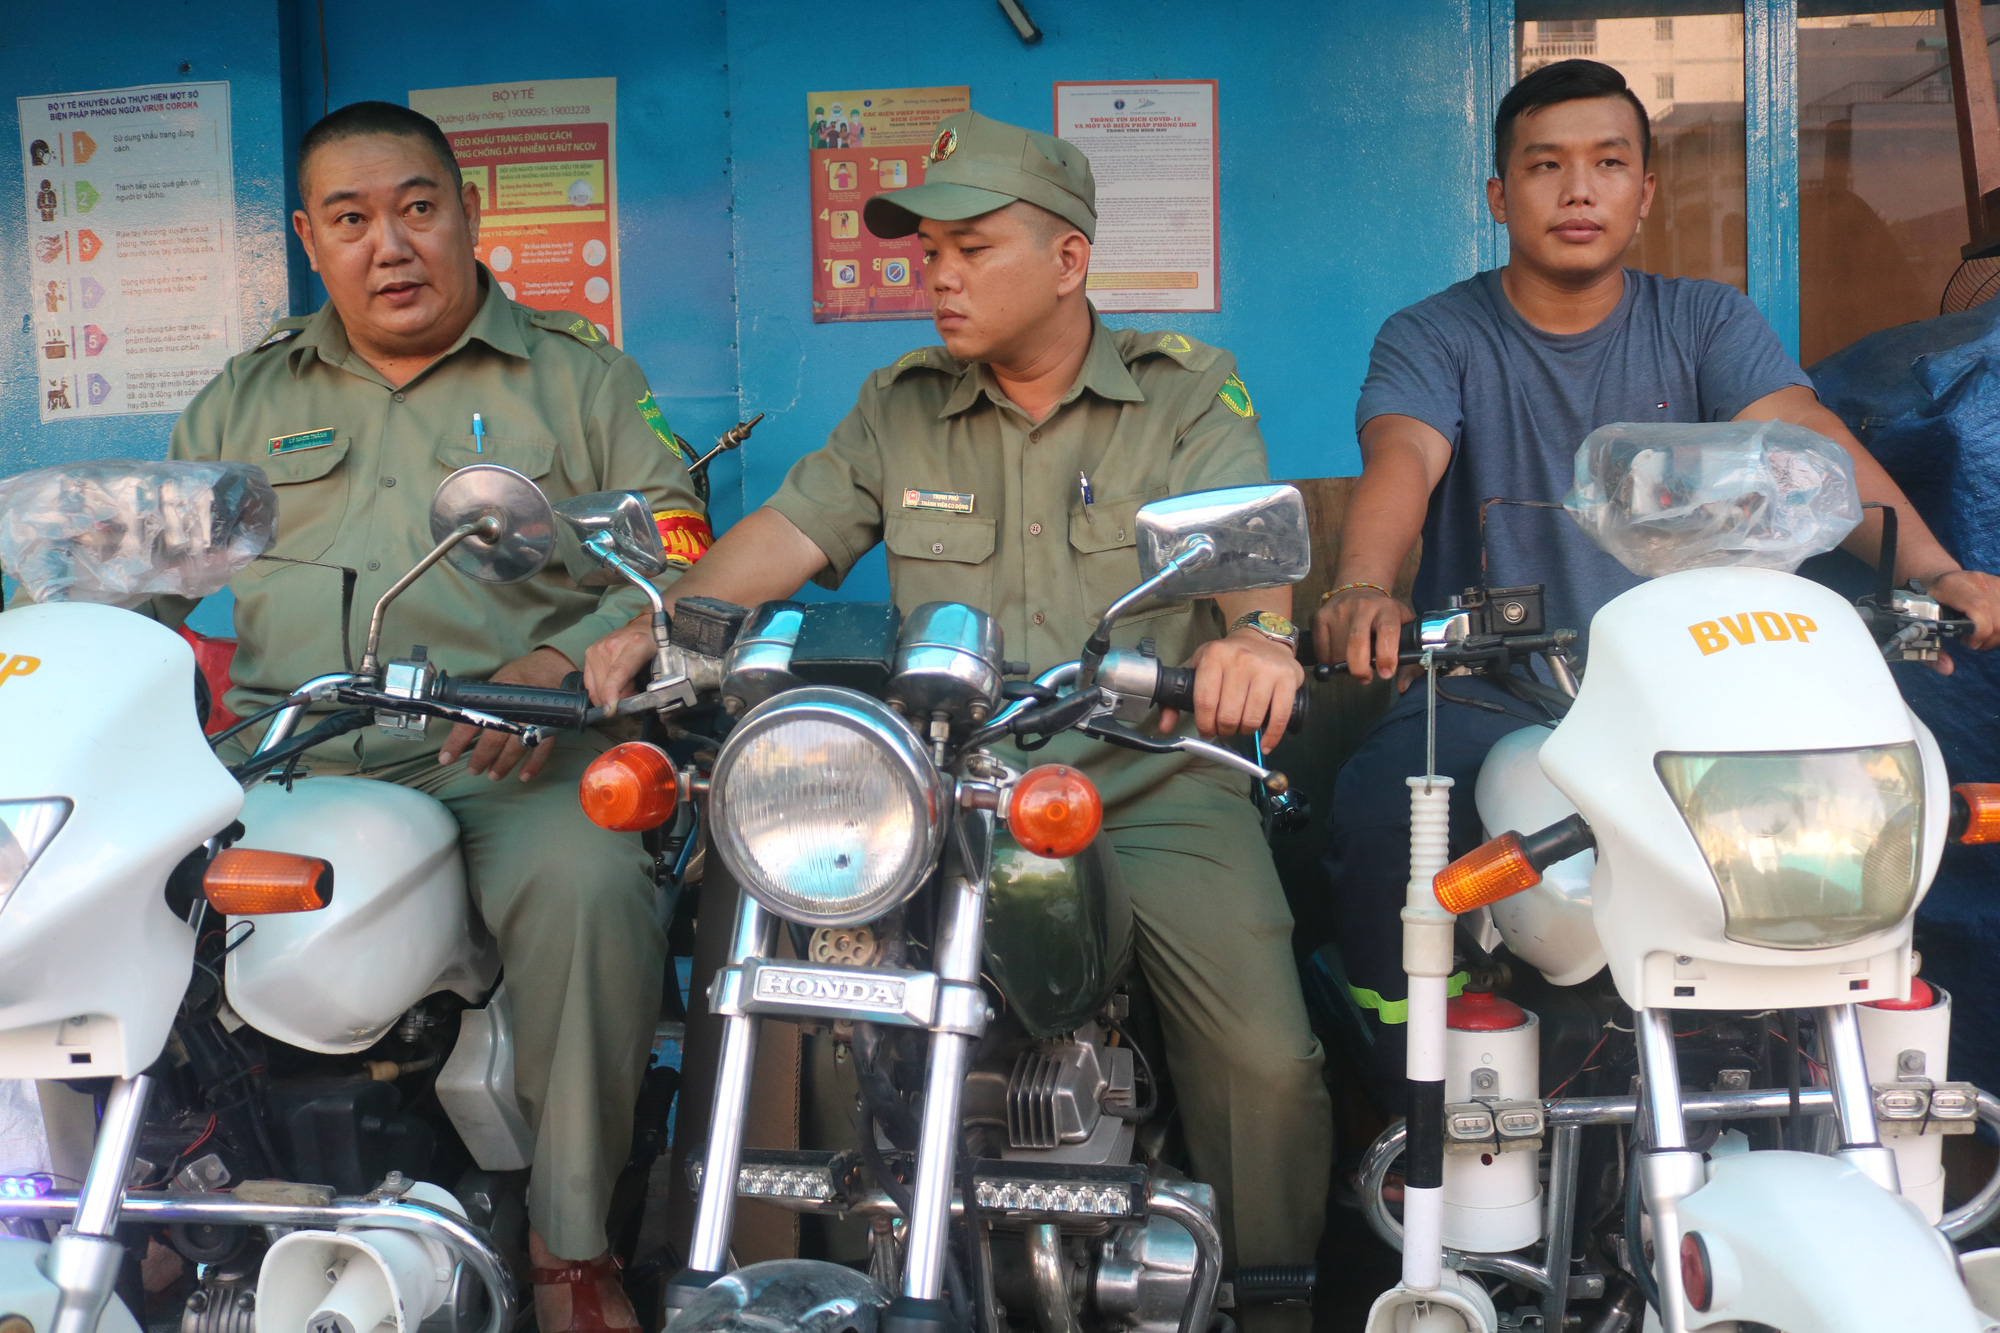 Ly Nhon Thanh (left) sits on his motorcycle next to two coworkers. He bought the motorcycle with his own money to chase robbers. Photo: Thu Hien / Tuoi Tre